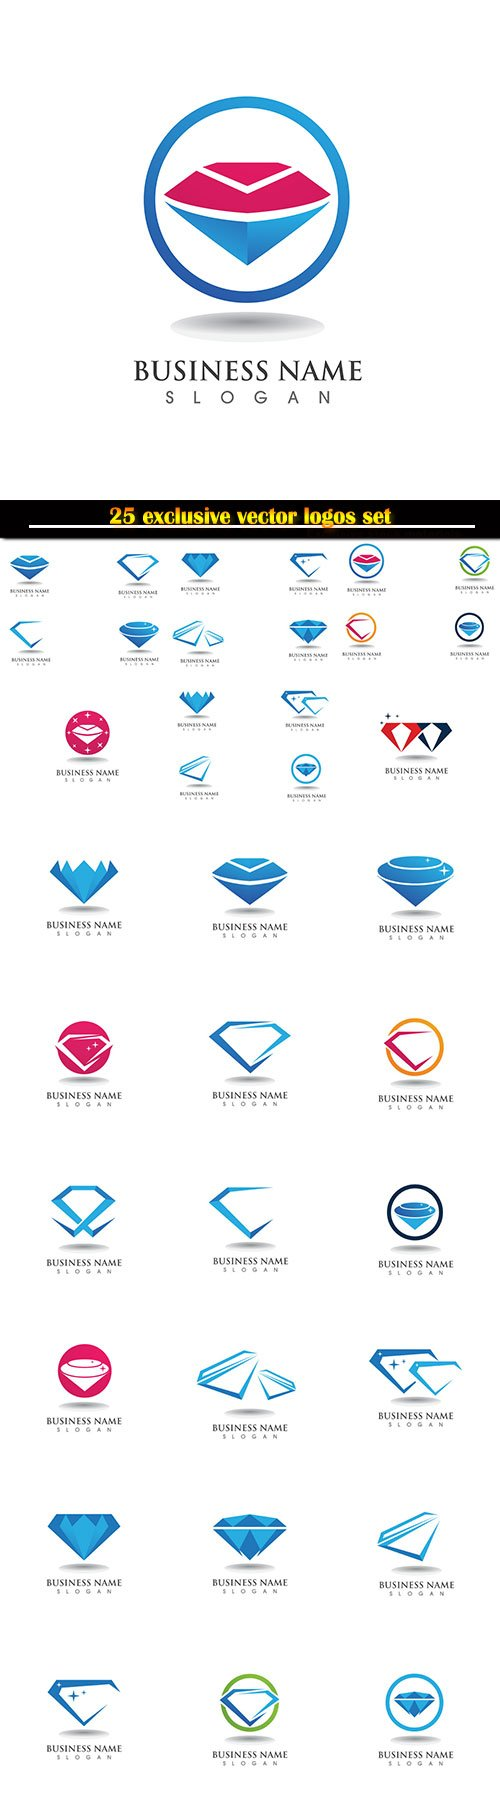 Logo business vector illustration template # 128